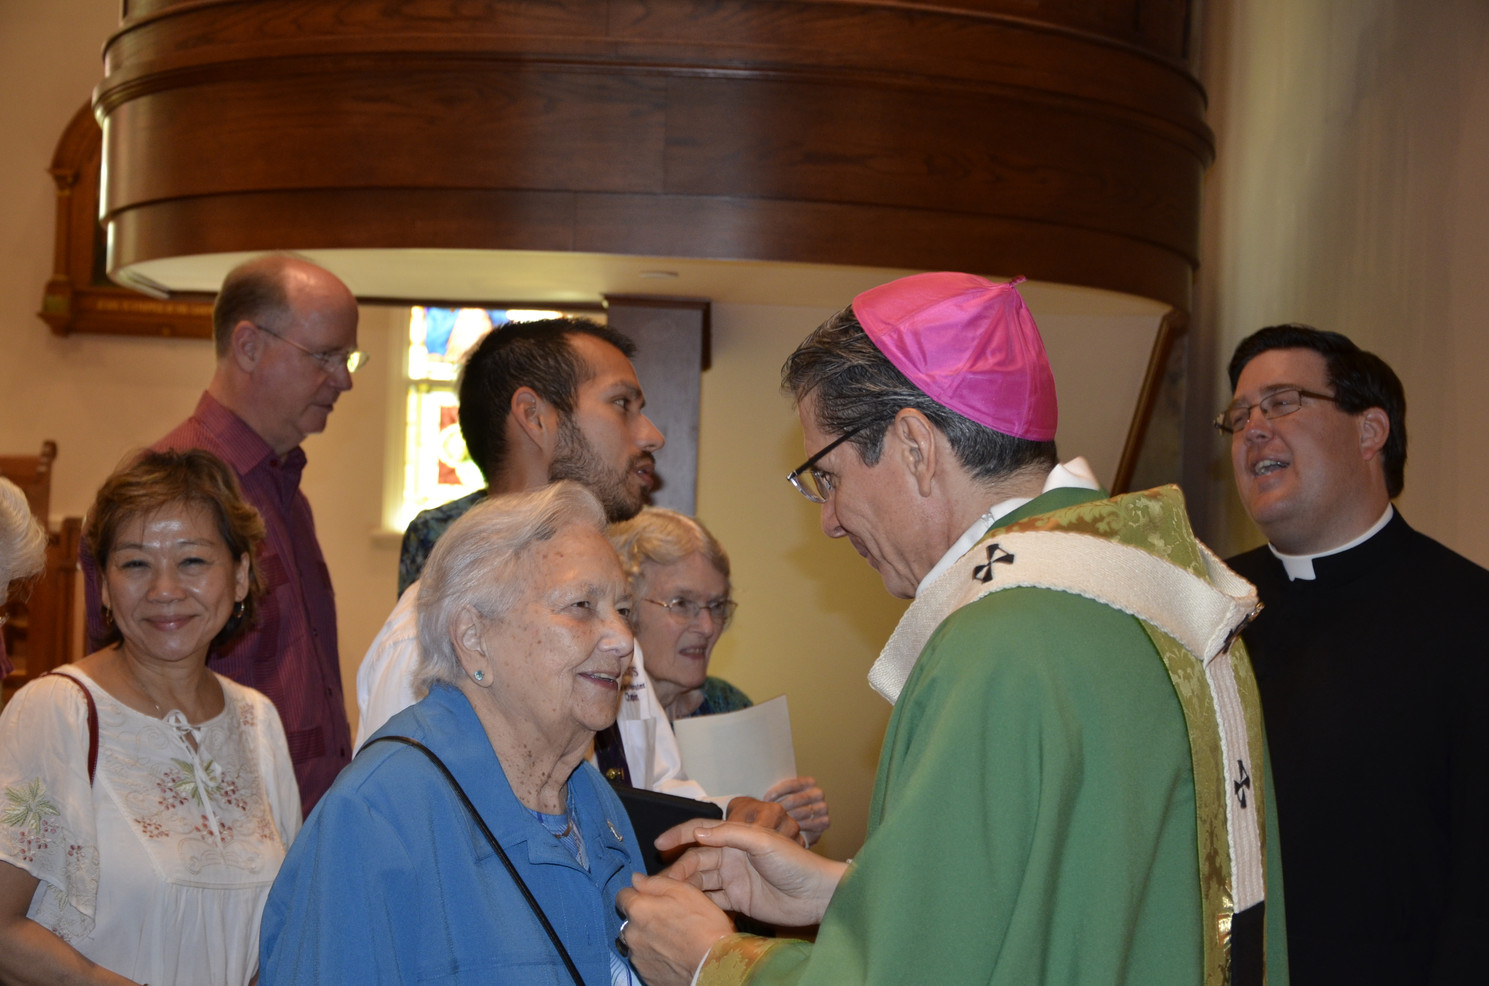 Sr. Rosa María had a tremendous impact on the understanding of culture and popular religiosity in liturgy and worship. Besides her teaching, she for many years counseled and translated for the U.S. Conference of Catholic Bishops, offering to them her valuable insights in popular faith.